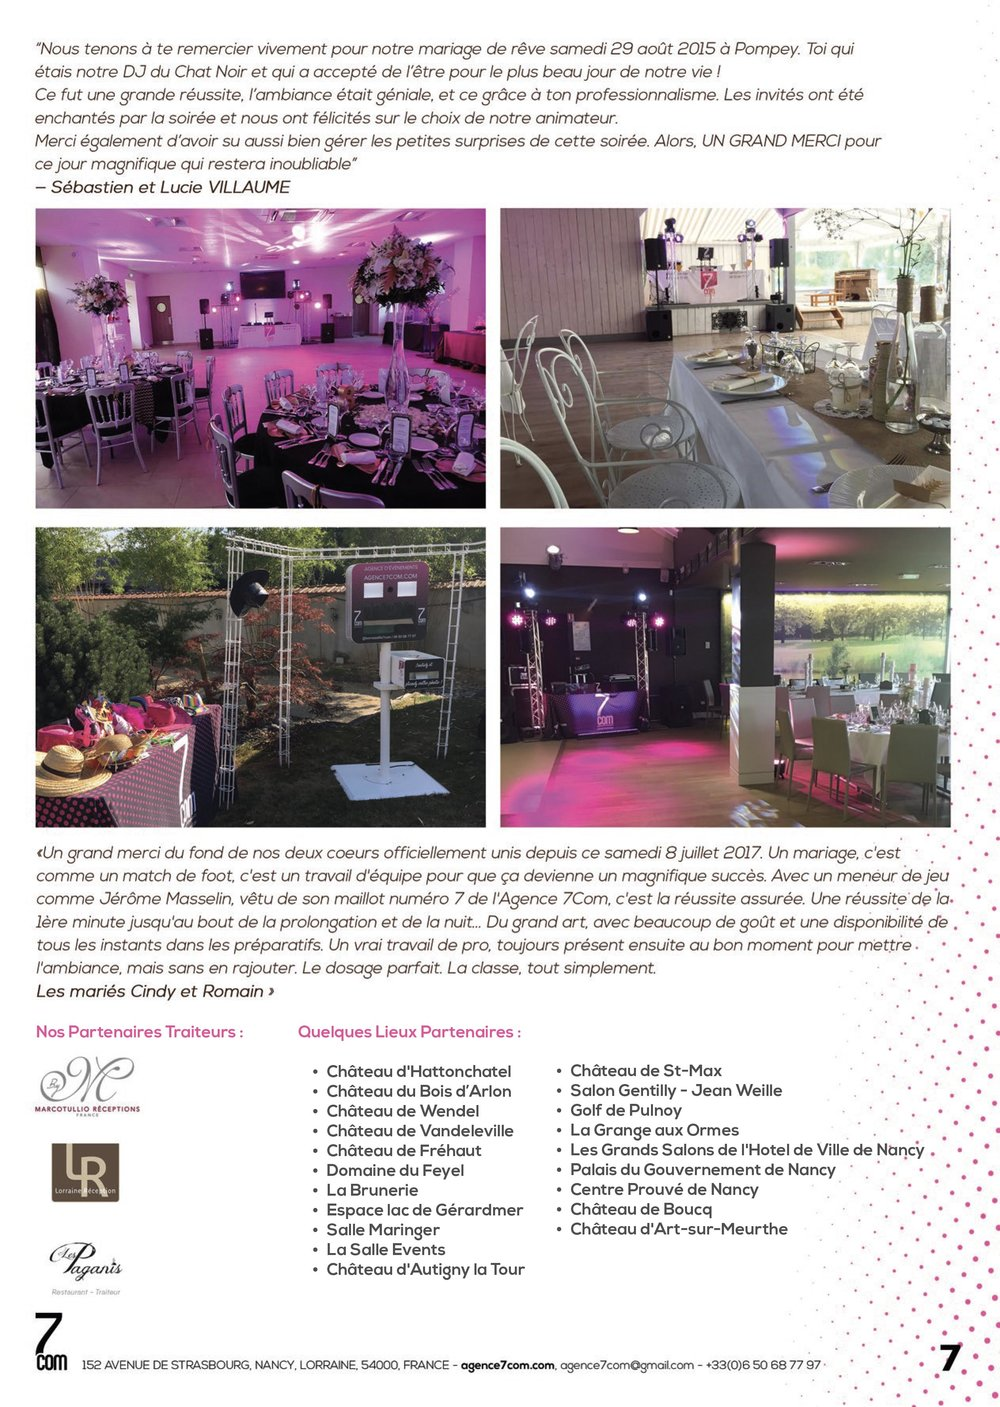 Brochure Mariage _7com_v3.compressed-7.jpg